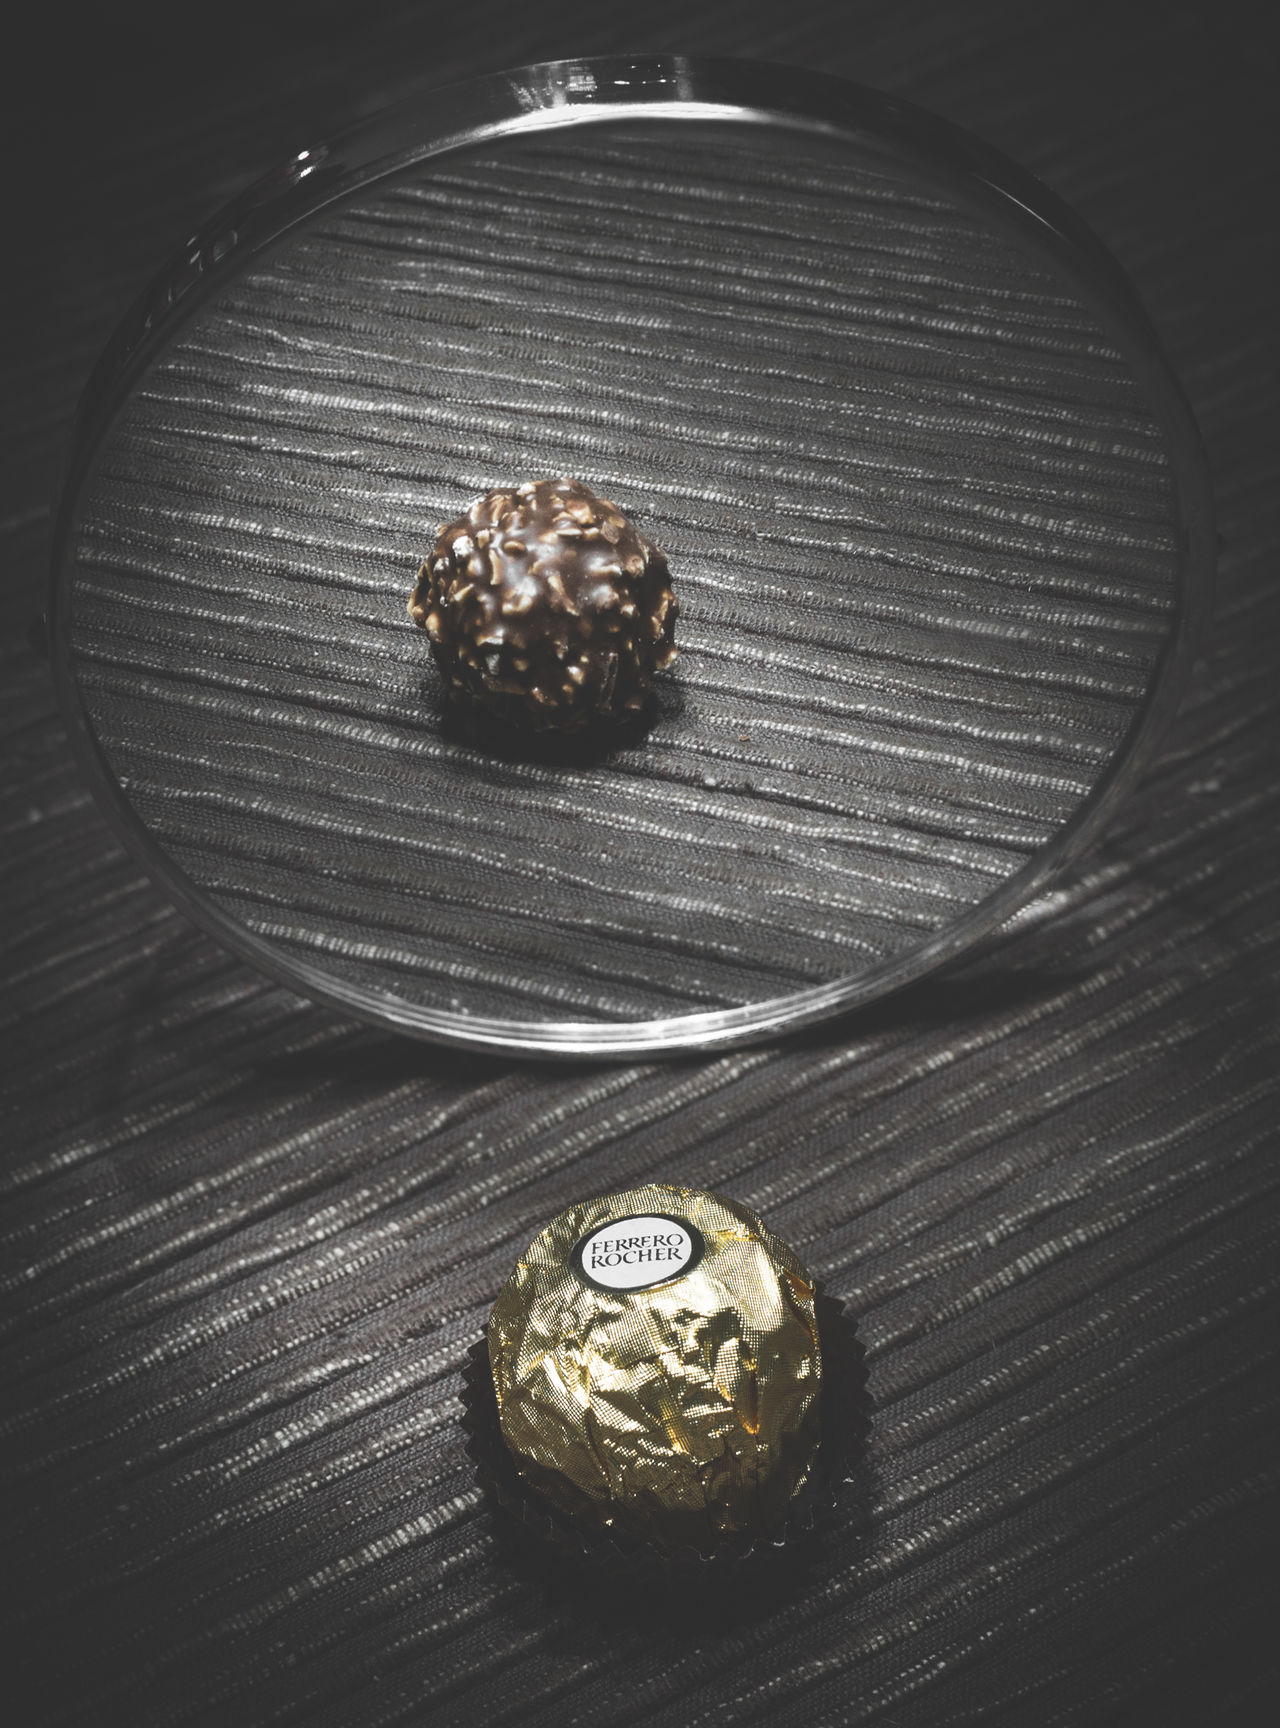 [ still mirror Rocher ] Chocolate Day Edit EyeEm EyeEm Best Edits EyeEm Best Shots EyeEm Best Shots - Nature EyeEm Gallery Ferrero Ferrerorocher Food Gold High Angle View Indoors  Mirror Still Life Table Taking Photos